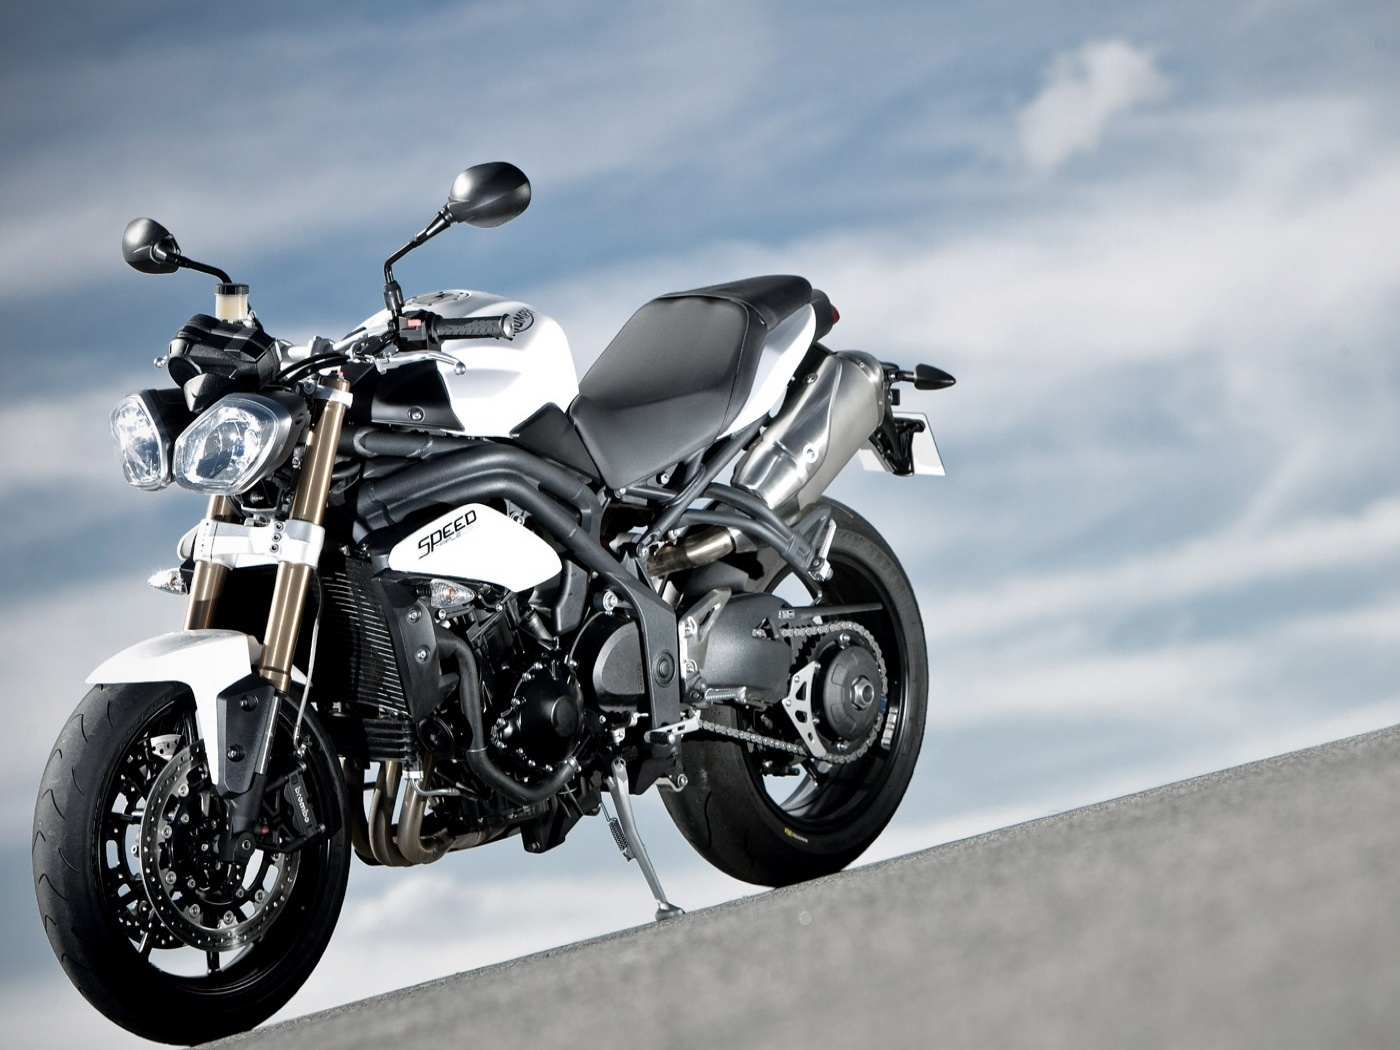 triumph speed triple wallpapers - 1400x1050 - 342879